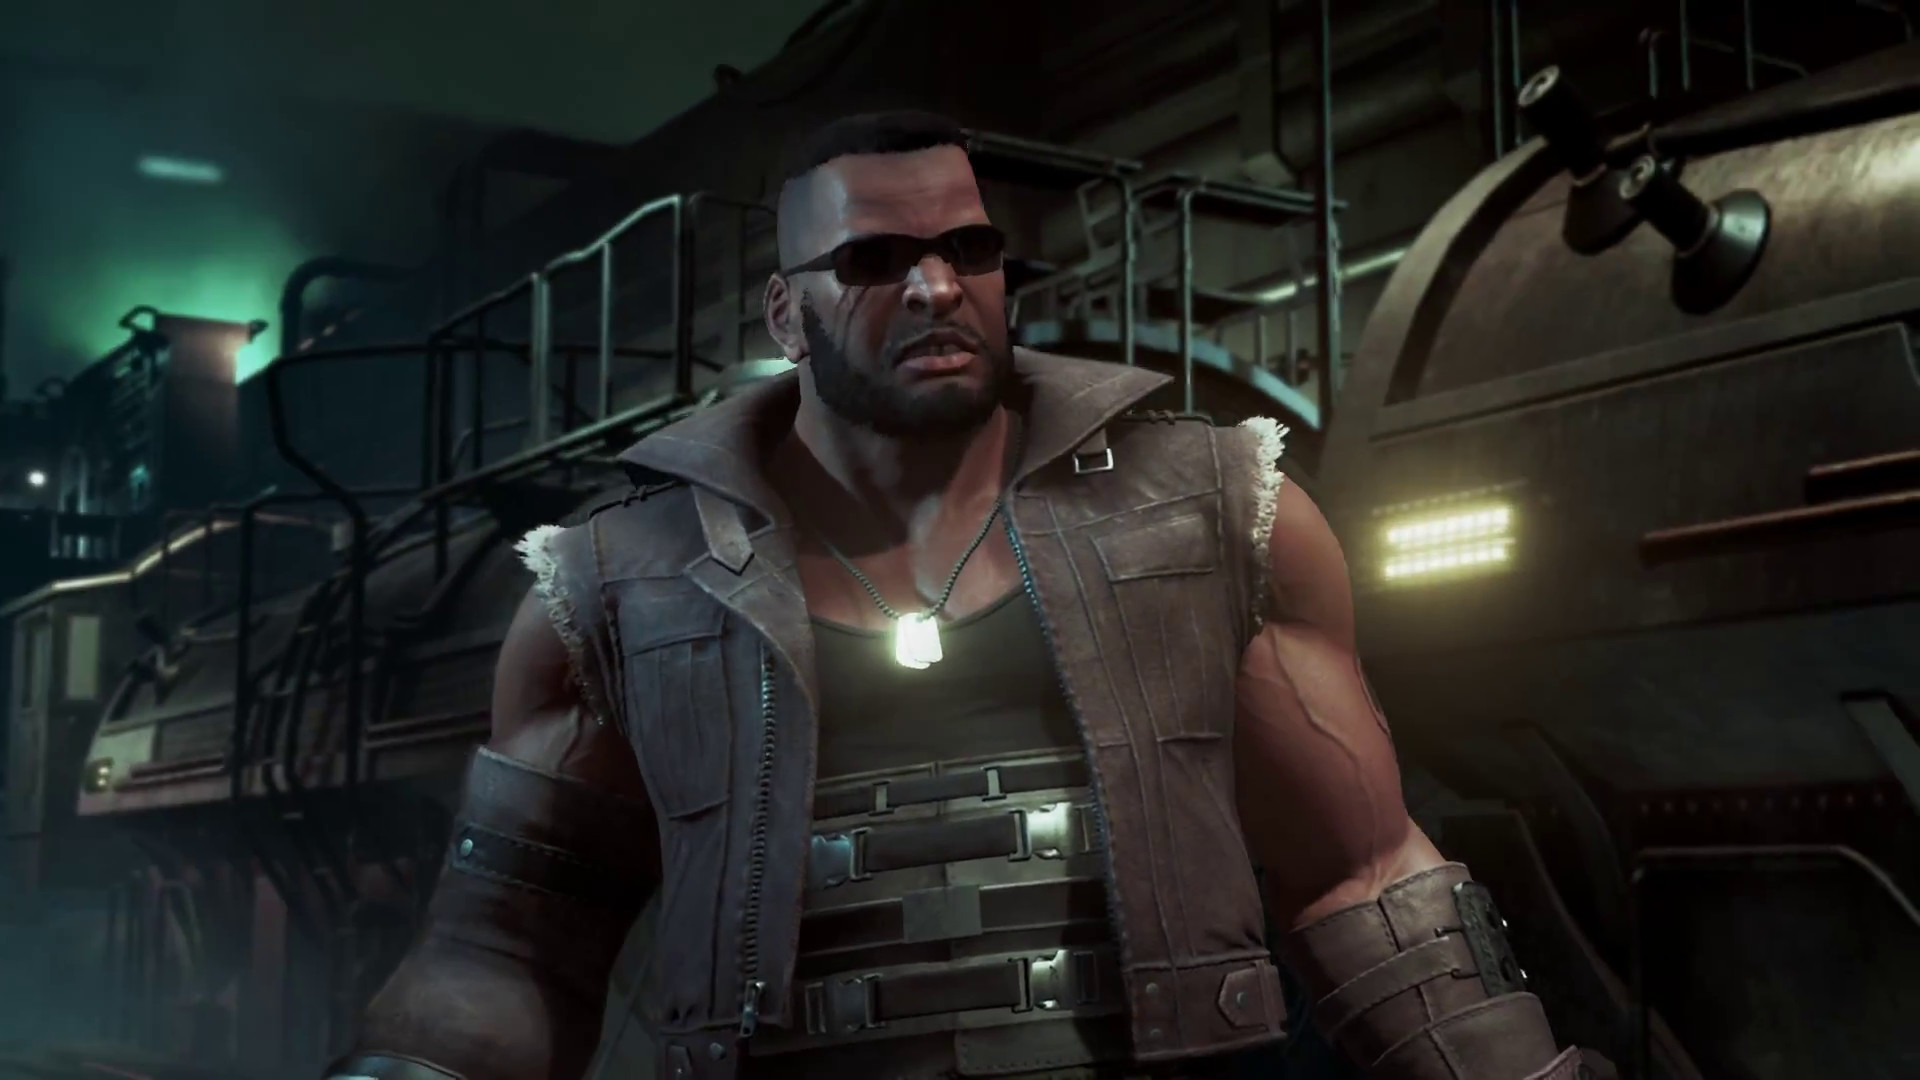 """The Final Fantasy VII remake was announced at E3 this year. In July,  Director Tetsuya Nomura stated """"We are bringing dramatic changes to the Final  Fantasy …"""